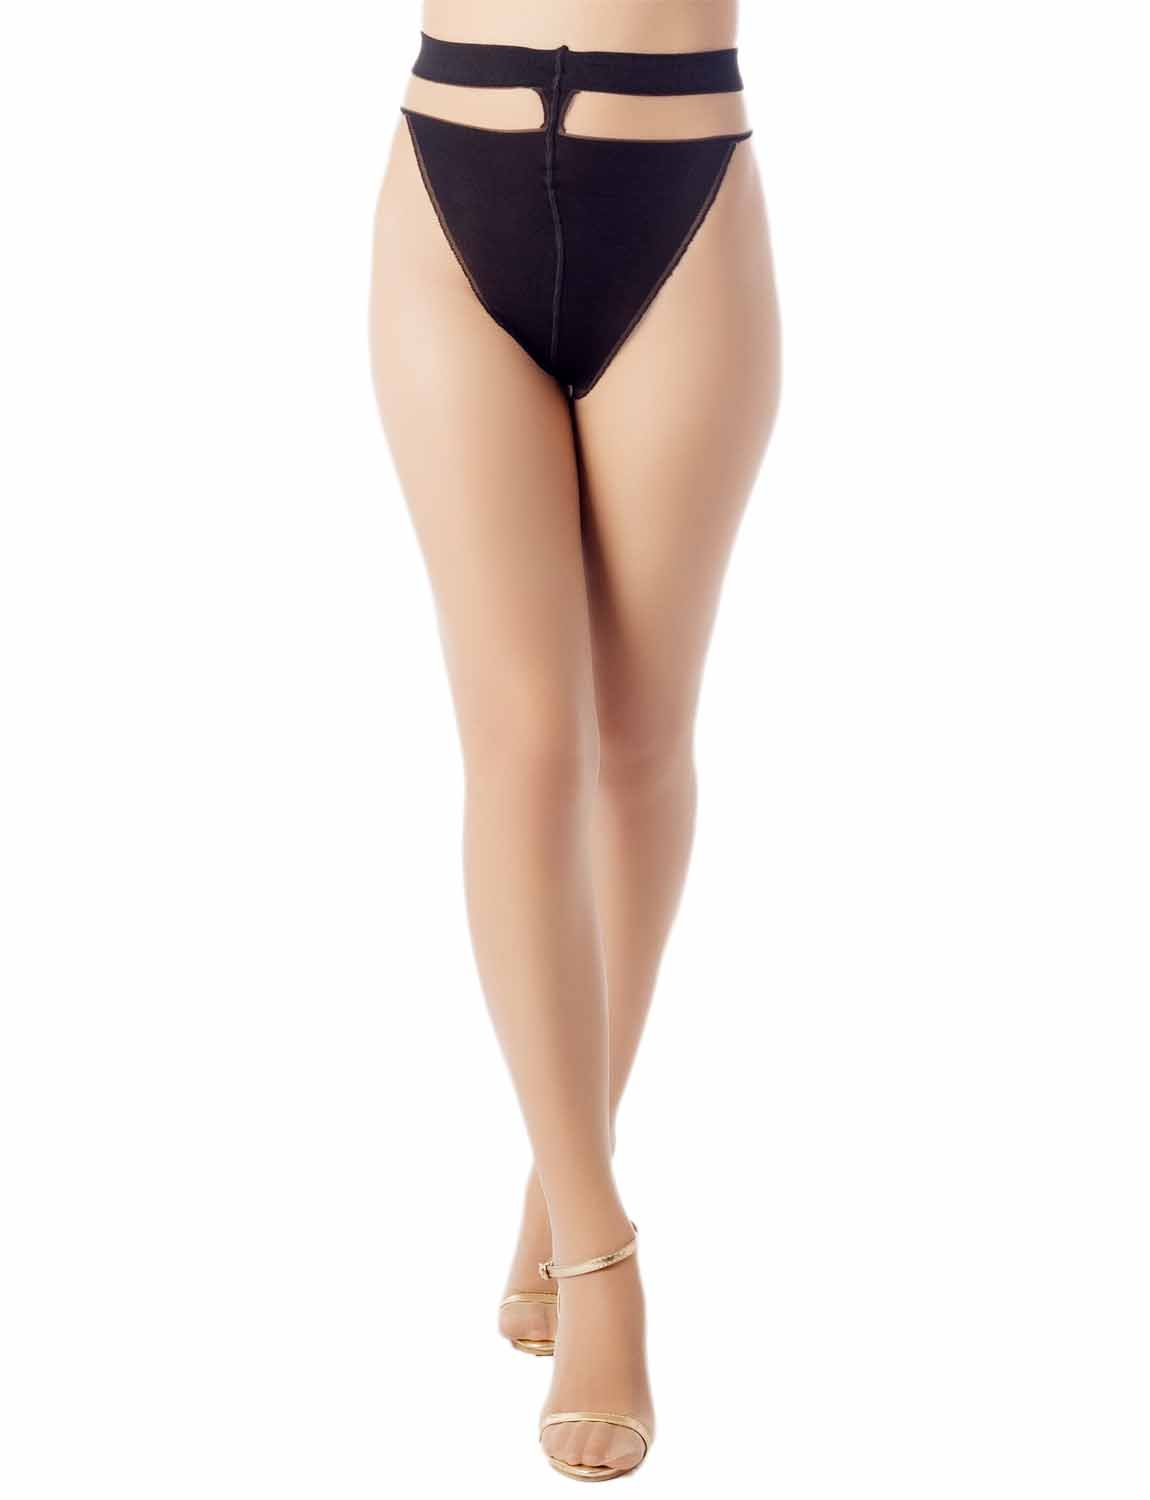 Women's Darkened Brief Pantie Everyday 5 DEN Ultra Sheer Tights Pantyhose, Size: One Size, Beige